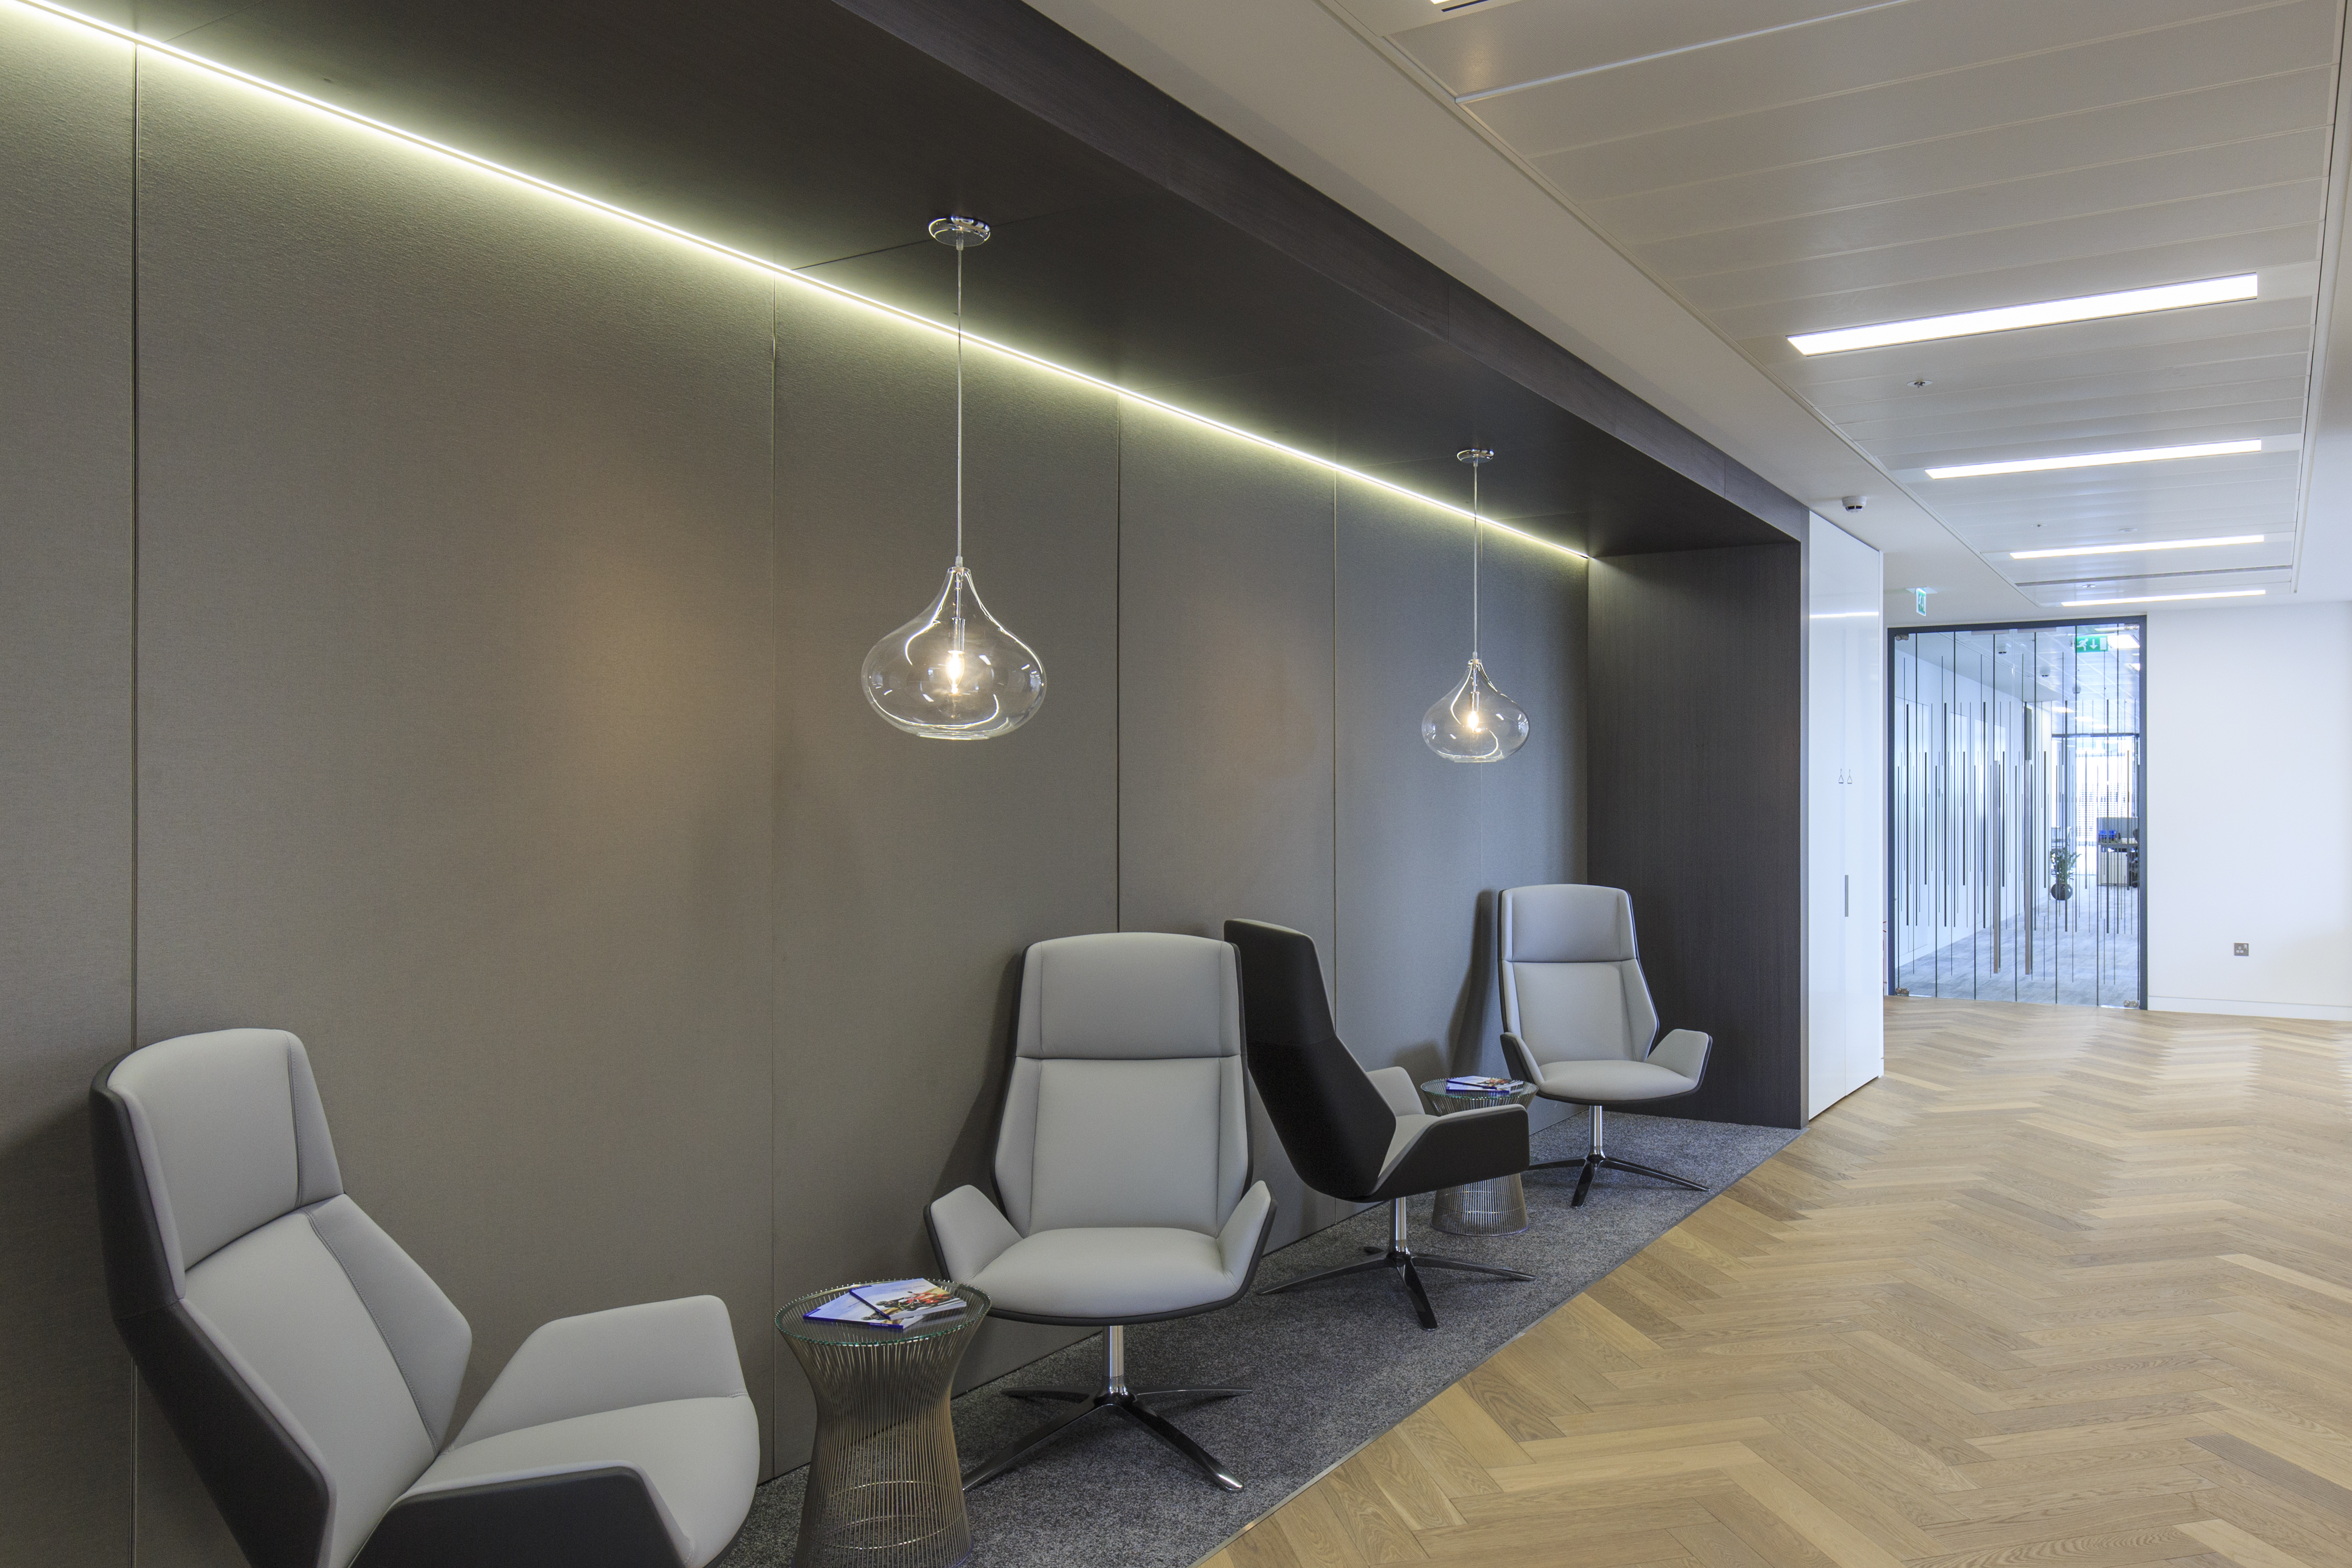 Equistone - Office photos - 28SEP16 (11 of 15)